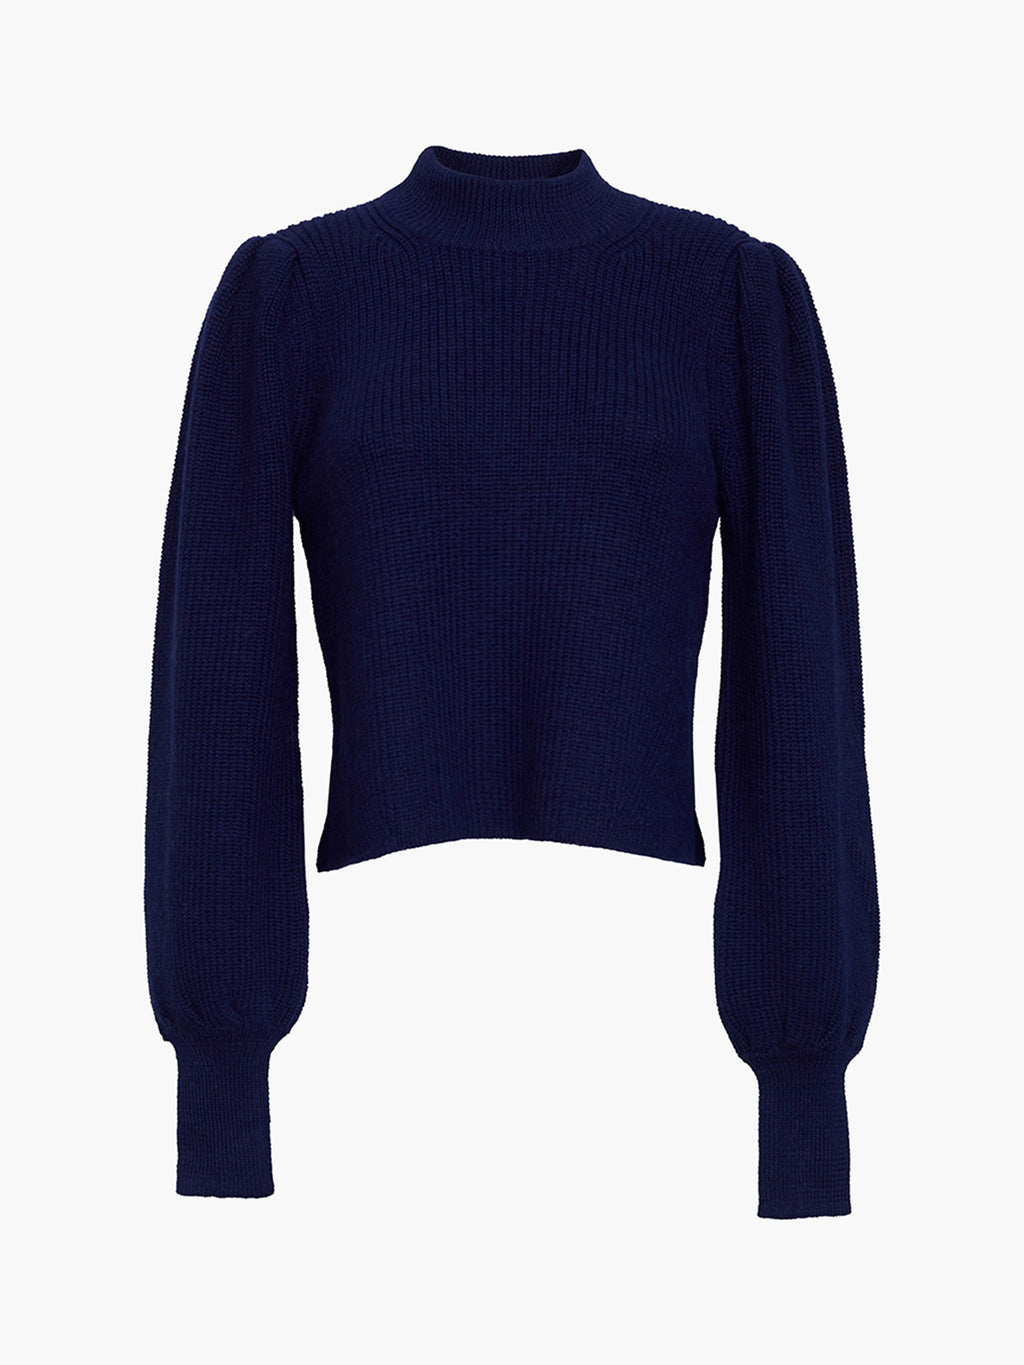 Mia Sweater | Navy